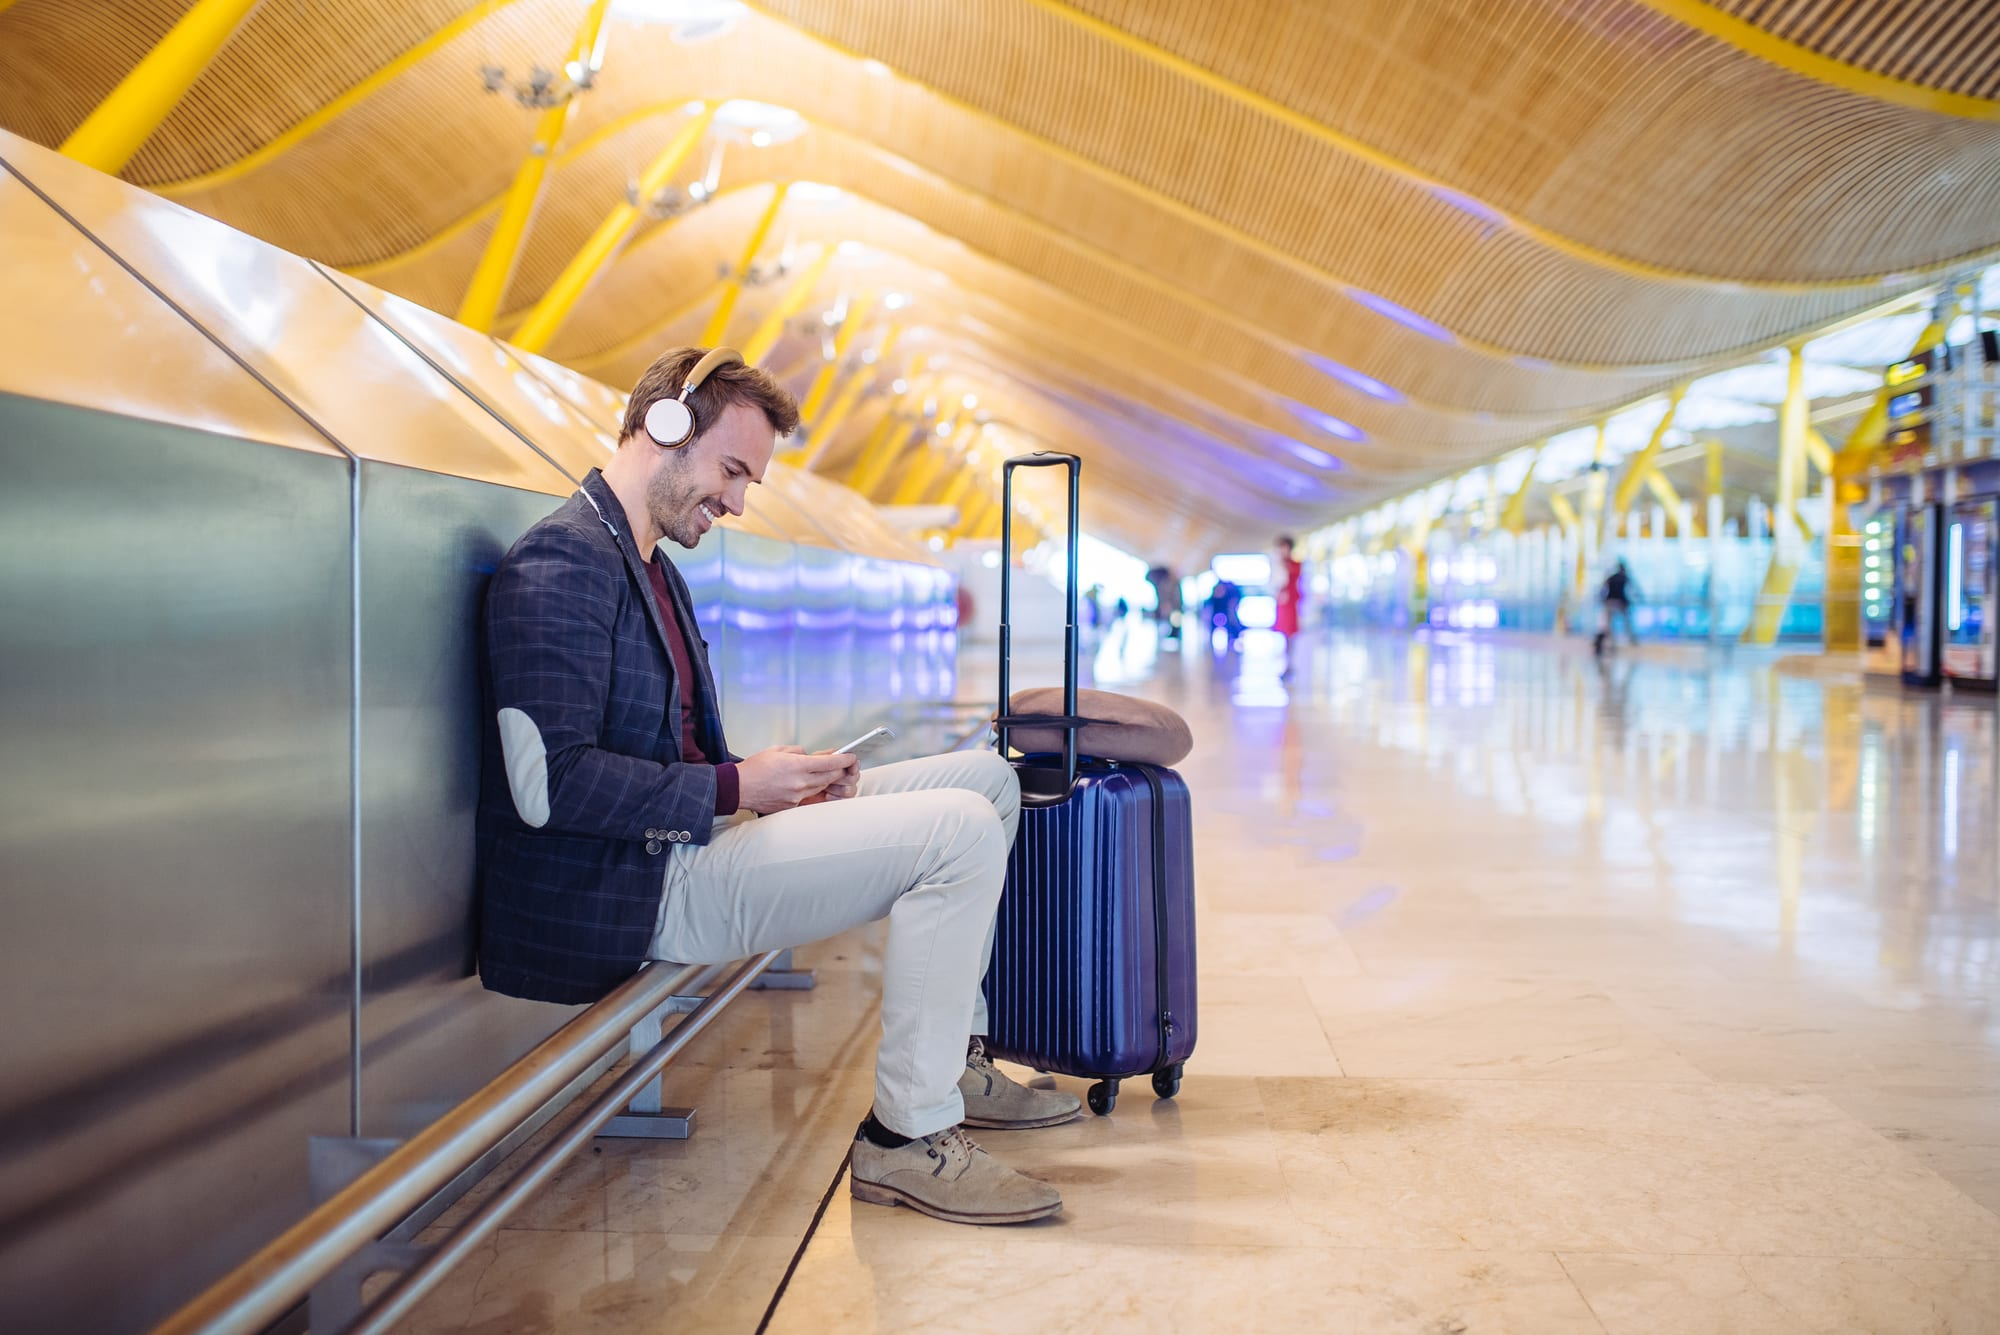 Traveler with electronic device, noice cancelling headphones and neck pillow. The best tech gadgets for travelers improve time spent away from home.